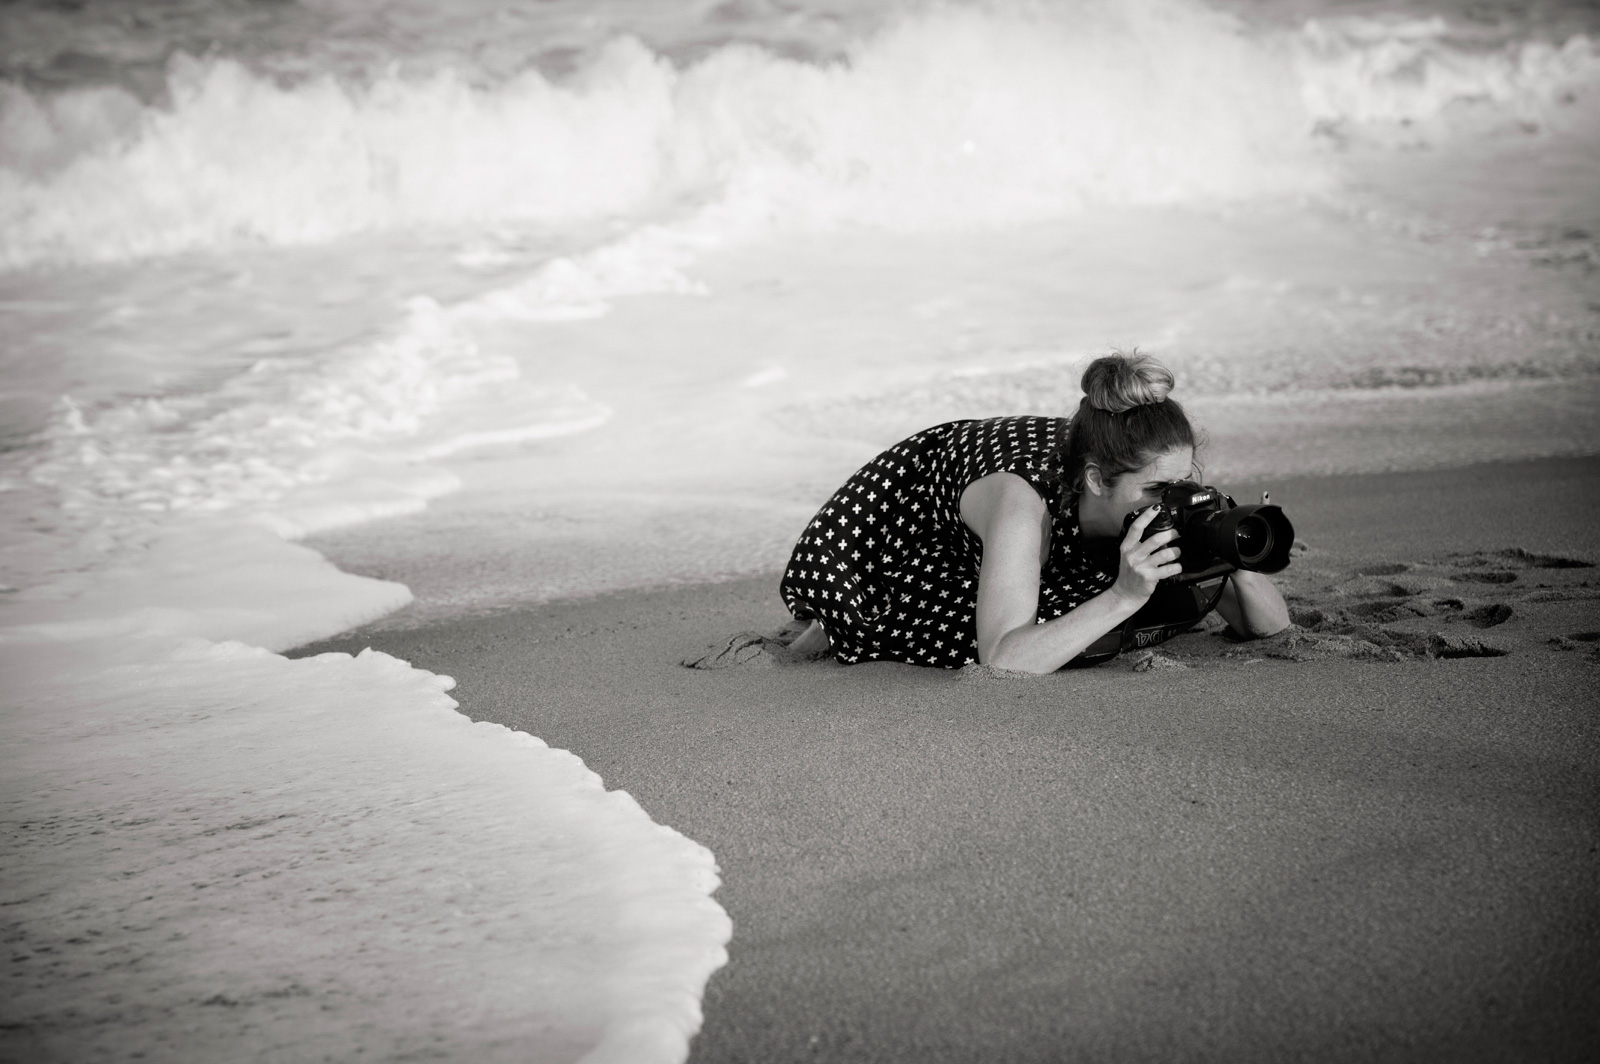 Photographer on beach